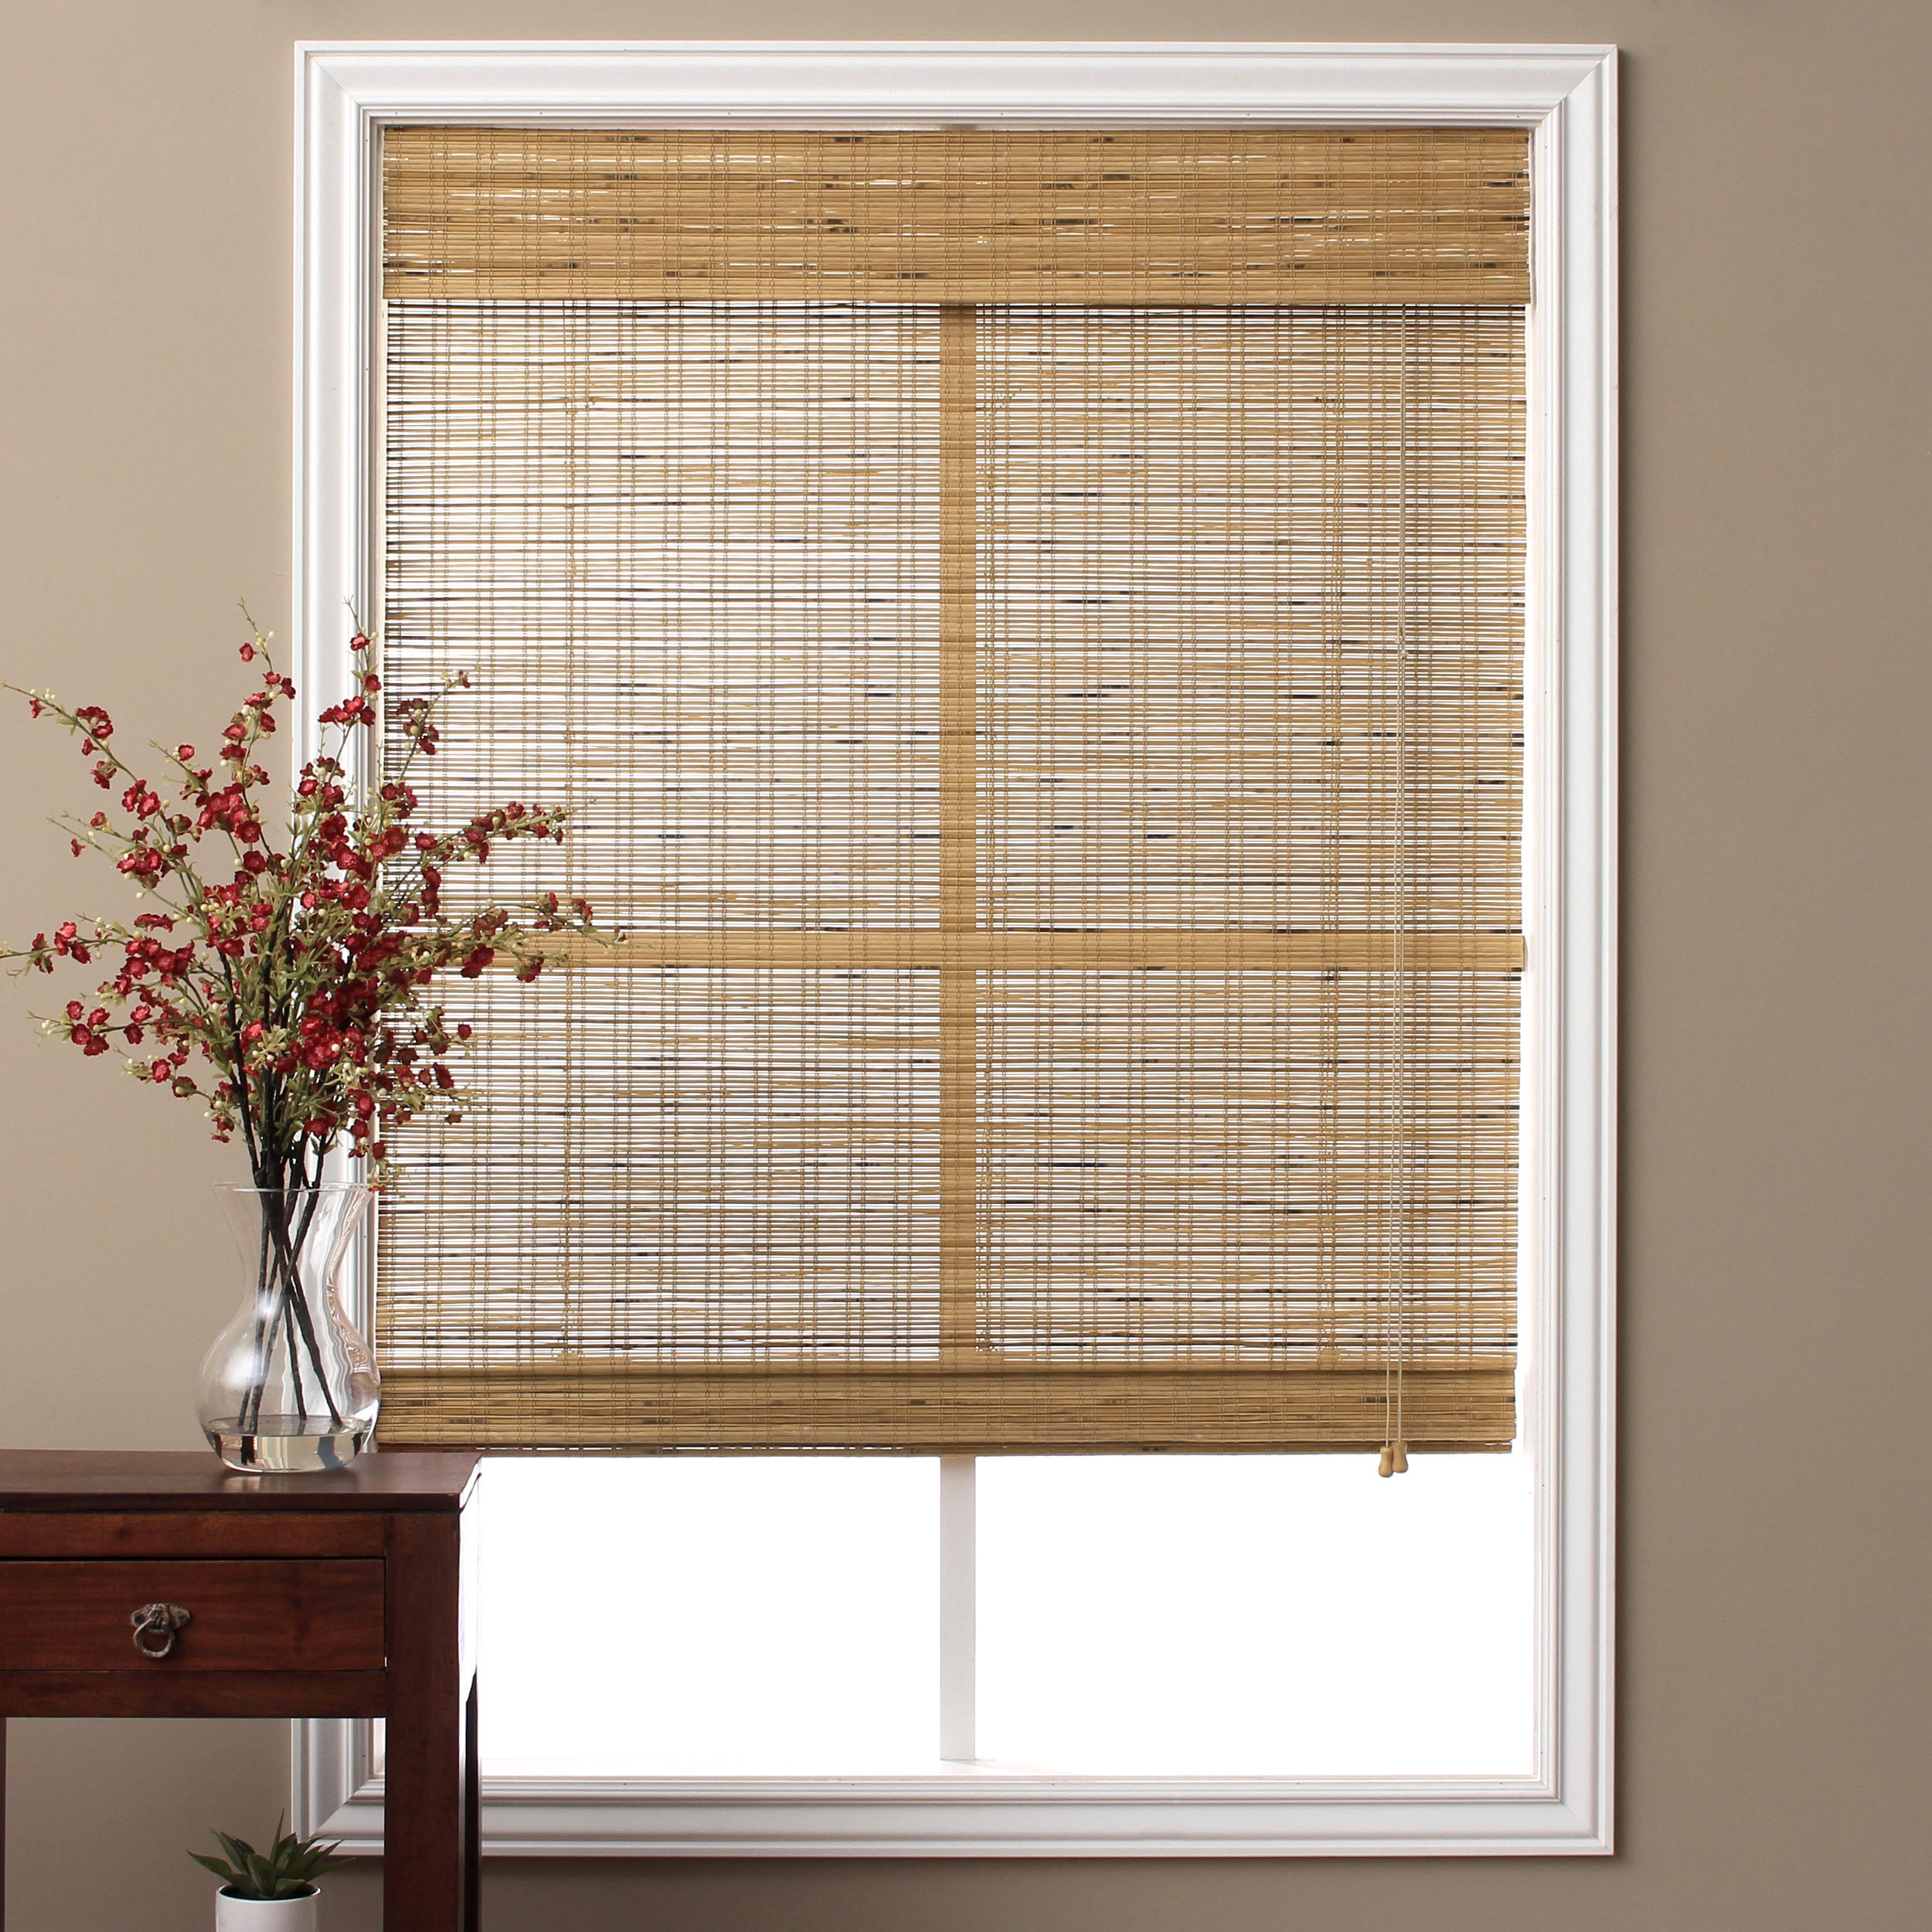 Types of curtains - than bamboo is better than Japanese and with which Italian ones compete